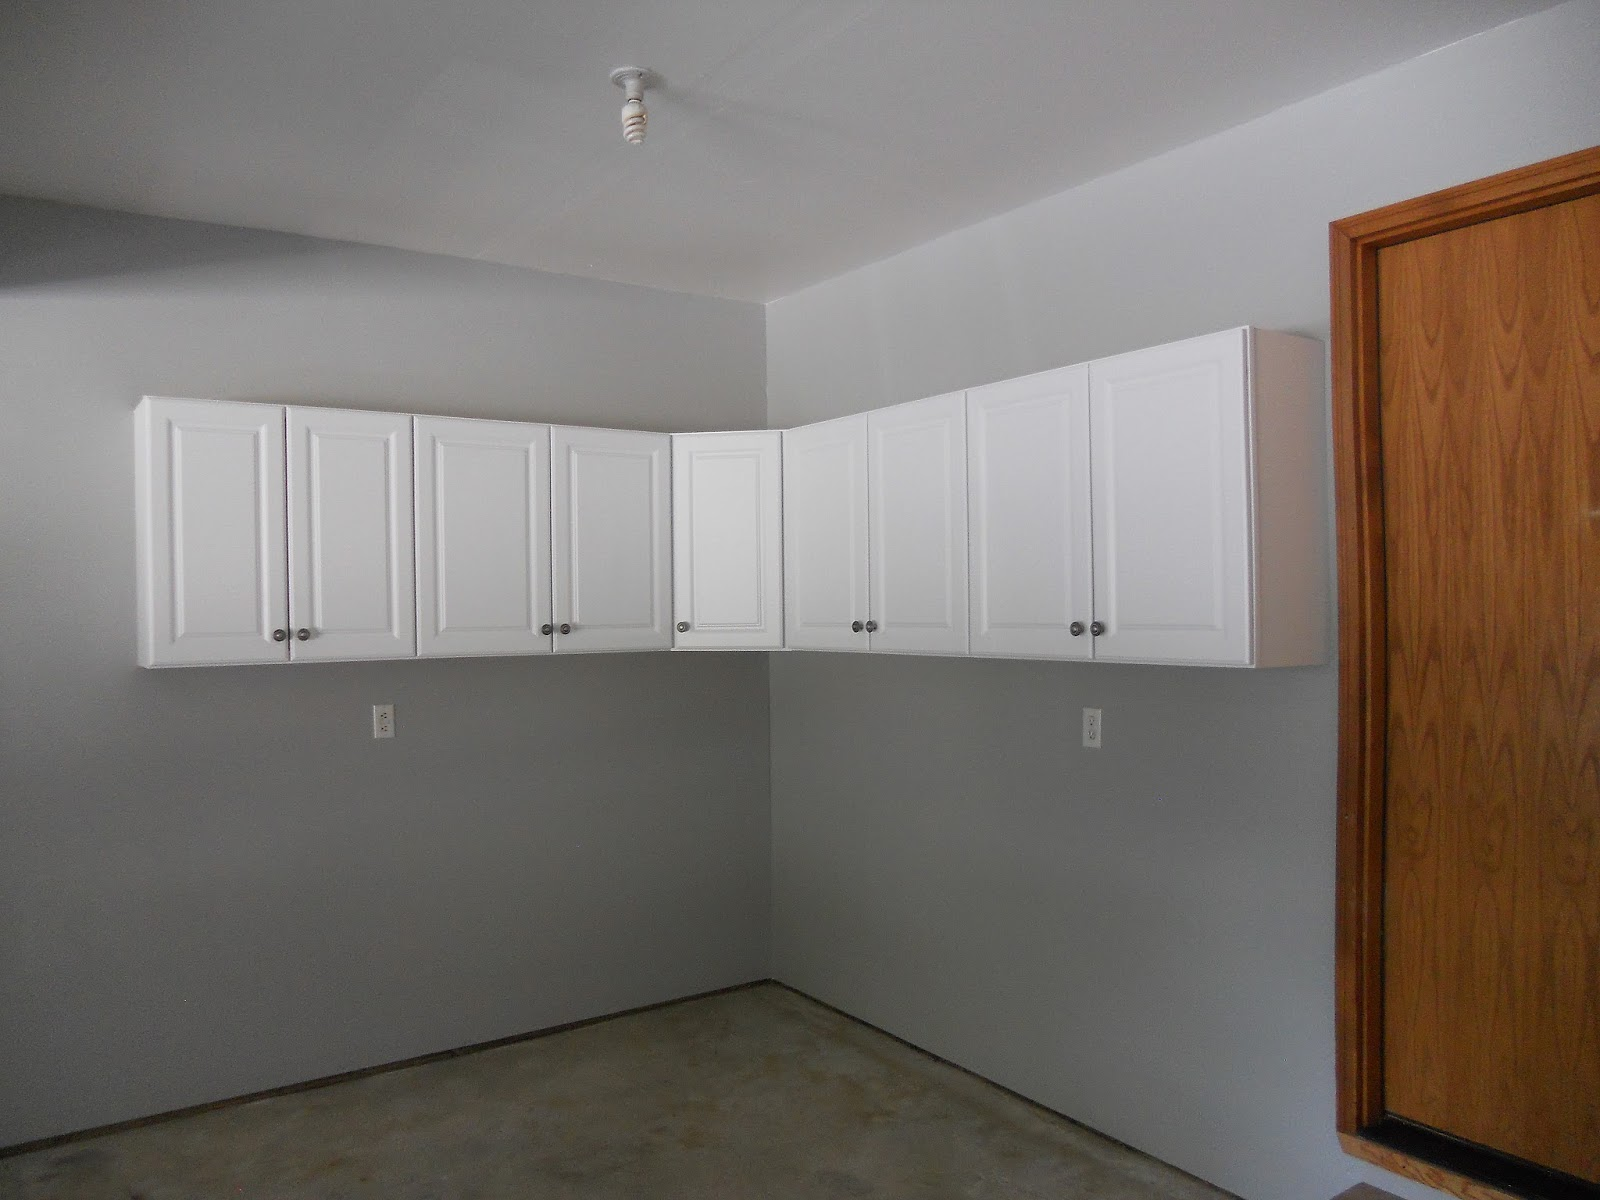 Just another hang up garage renovation cabinets - Wall cabinet design ...